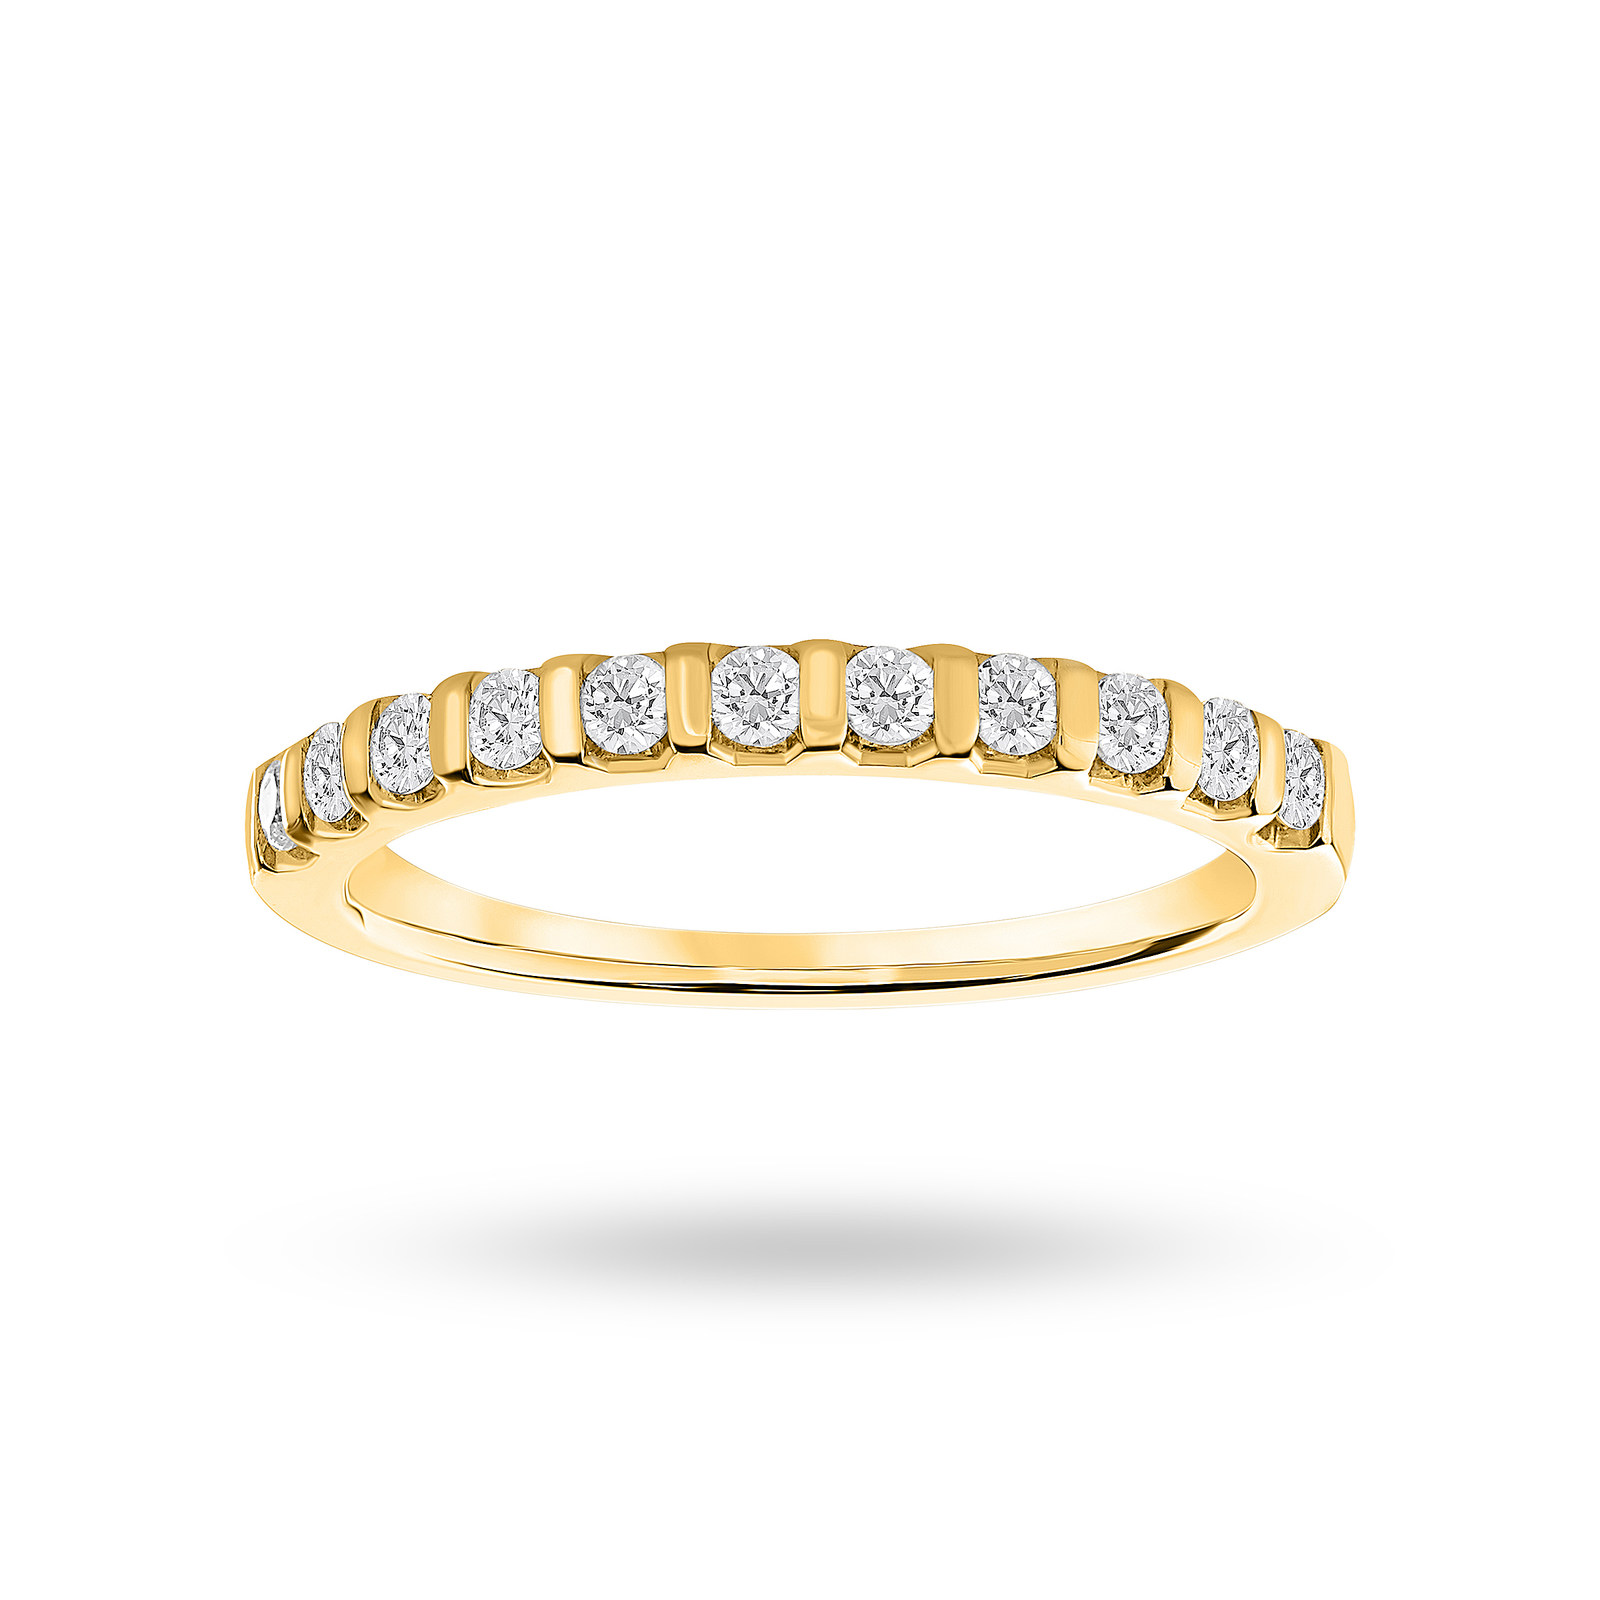 18 Carat Yellow Gold 0.30 Carat Brilliant Cut Bar Half Eternity Ring